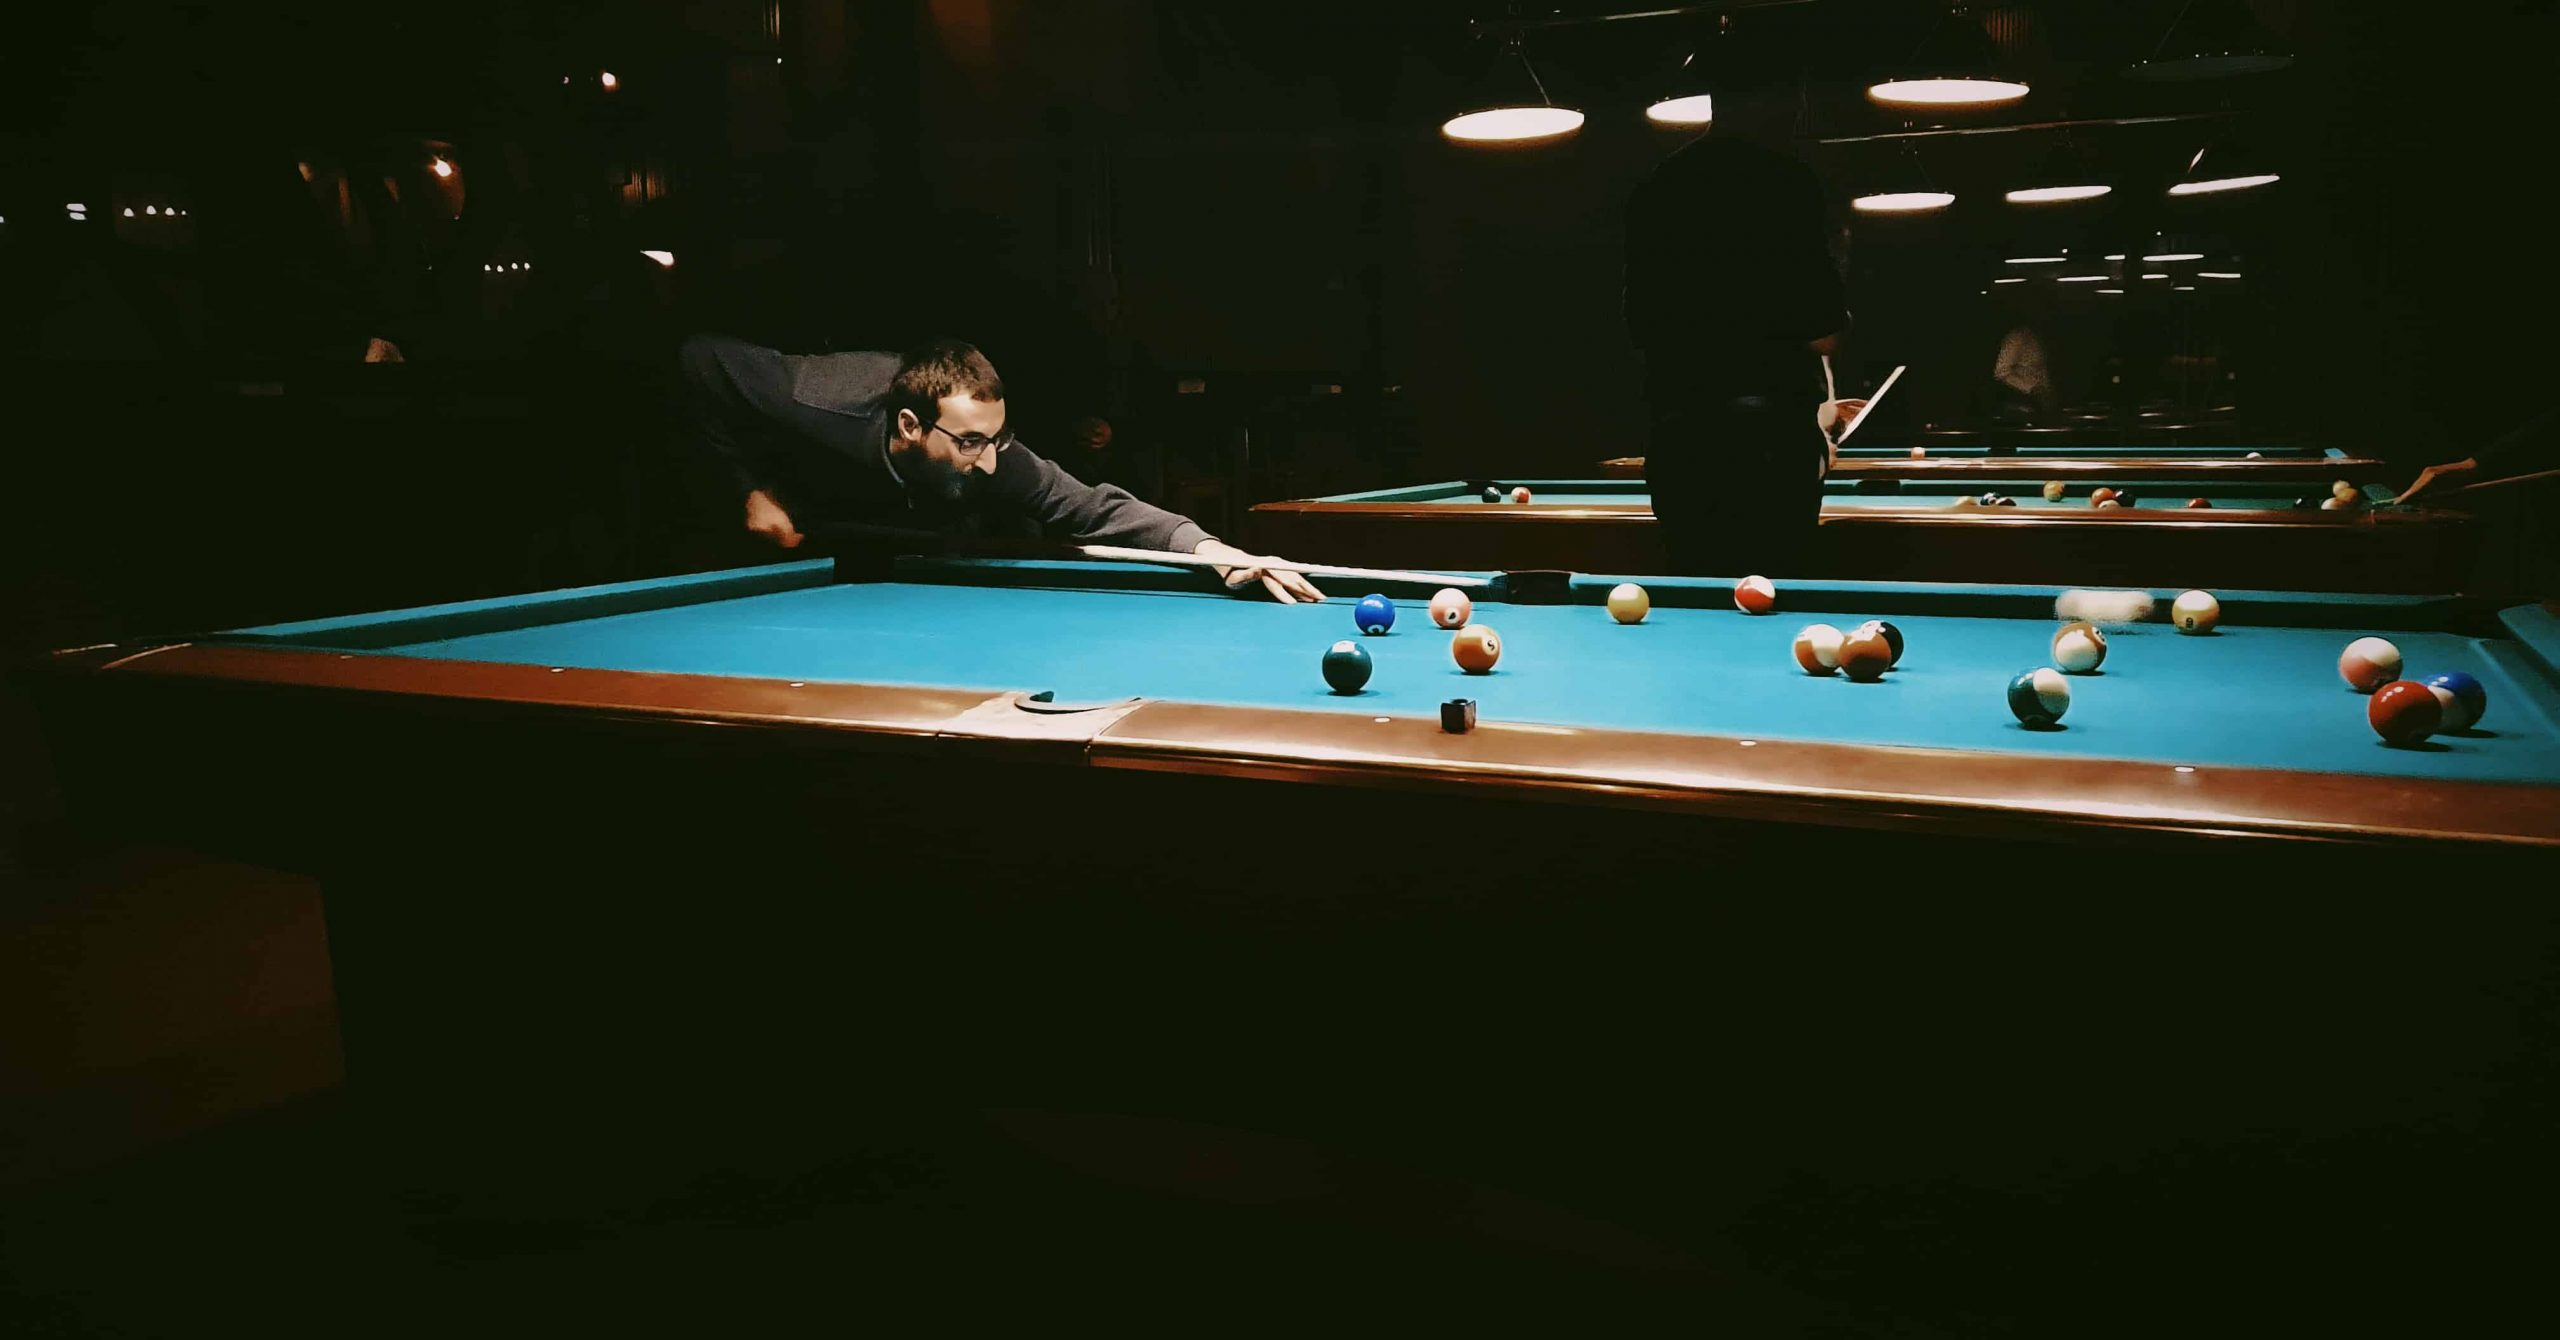 Review of the best under $1000 billiard pool tables